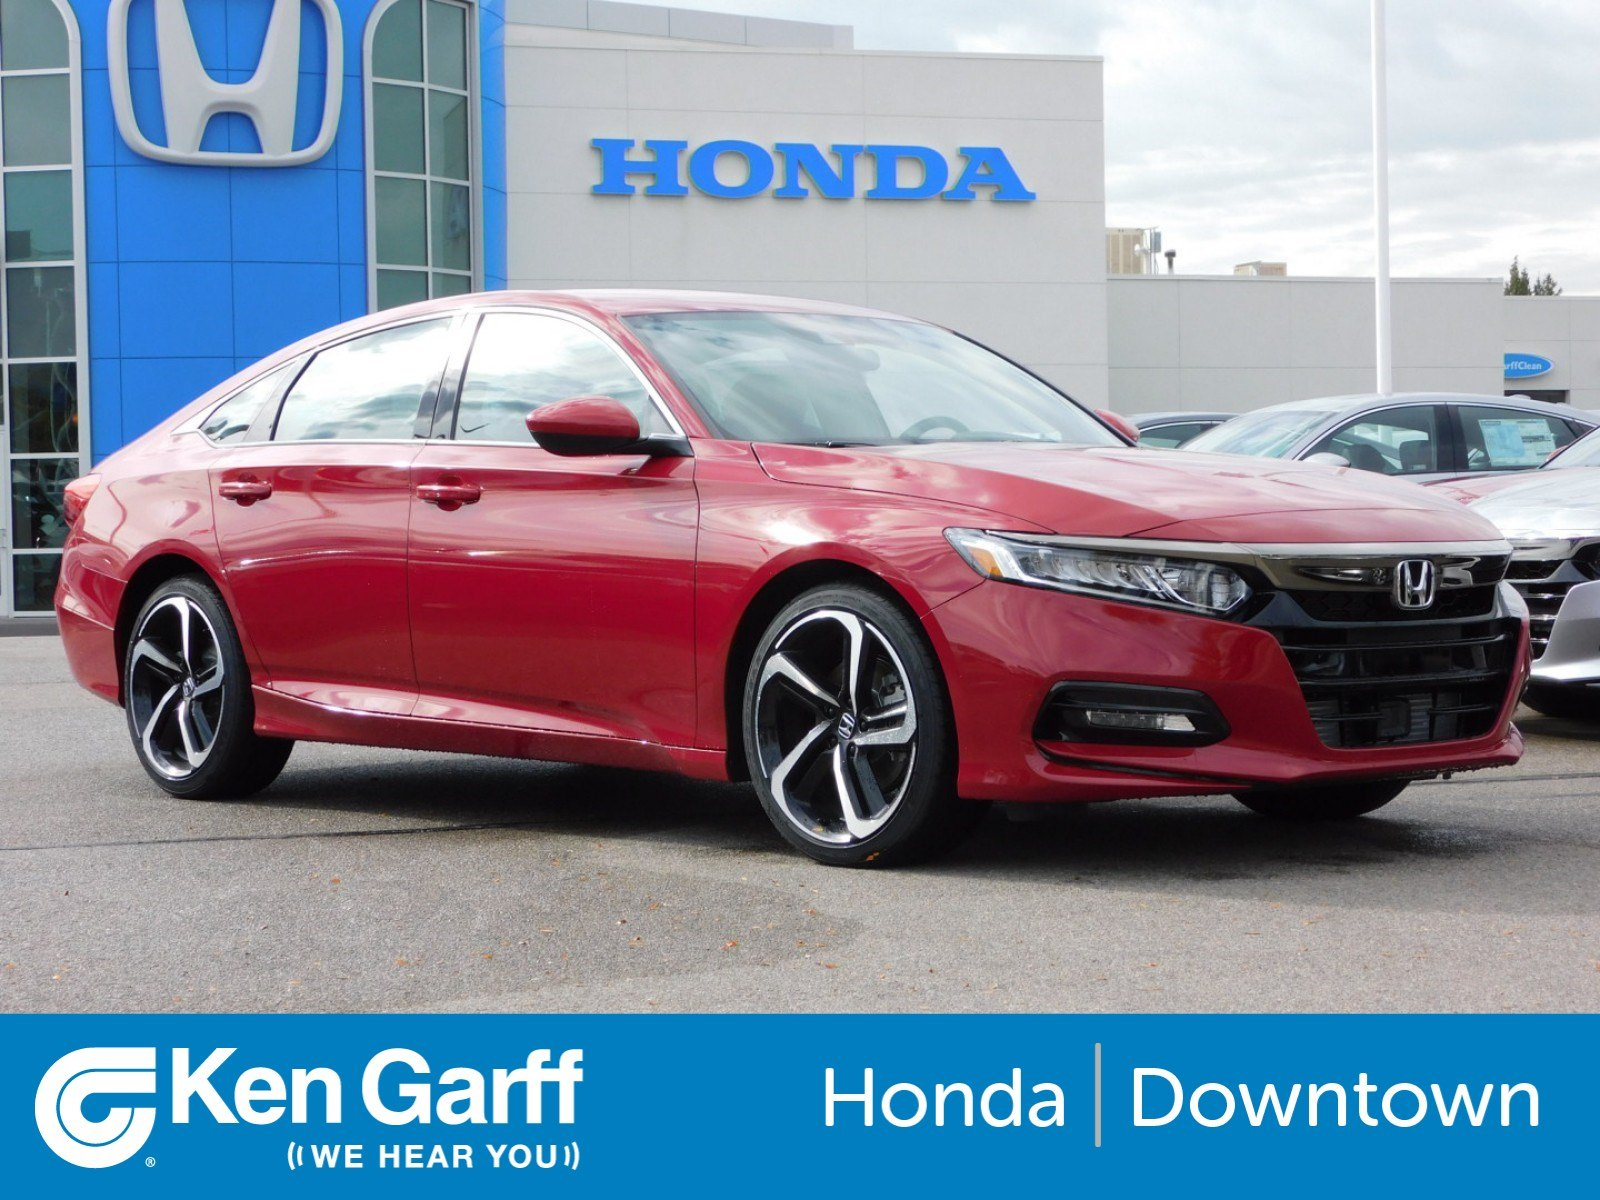 New 2018 Honda Accord Sedan Sport 1 5T 4dr Car in Salt Lake City